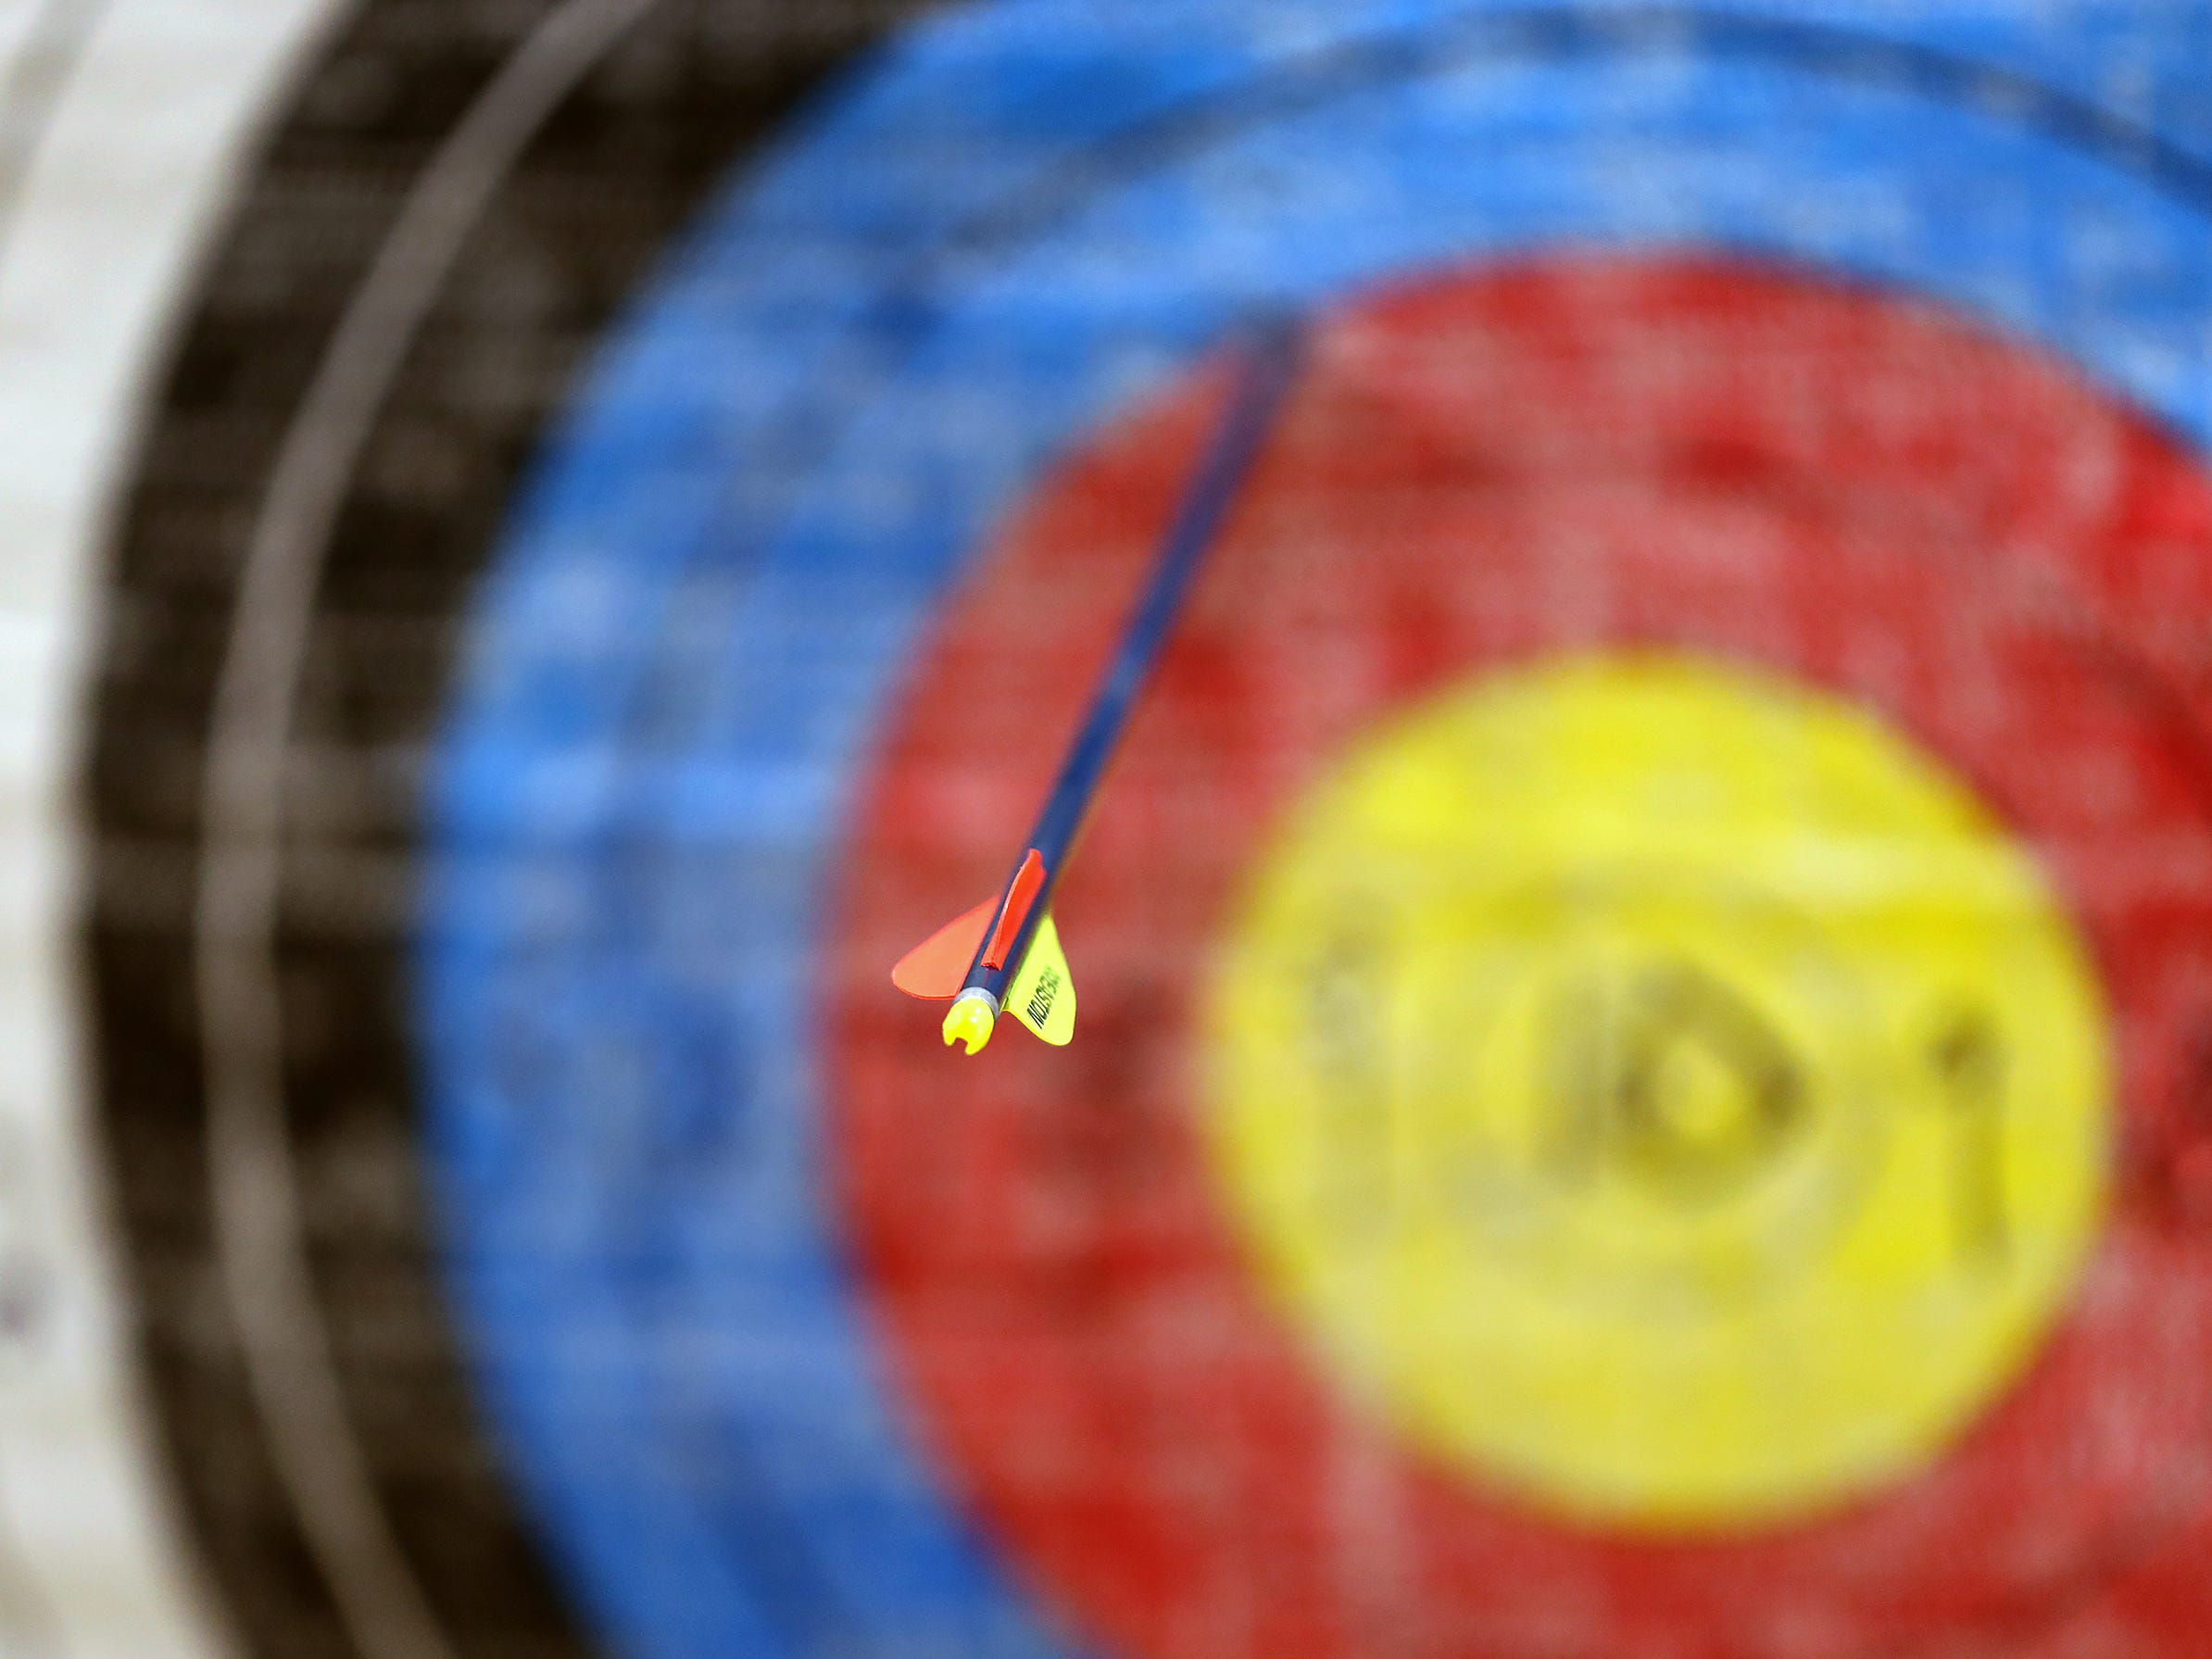 An arrow made it close to the bullseye during archery class at Lew Wallace Elementary IPS 107, Thursday, Dec. 20, 2018.